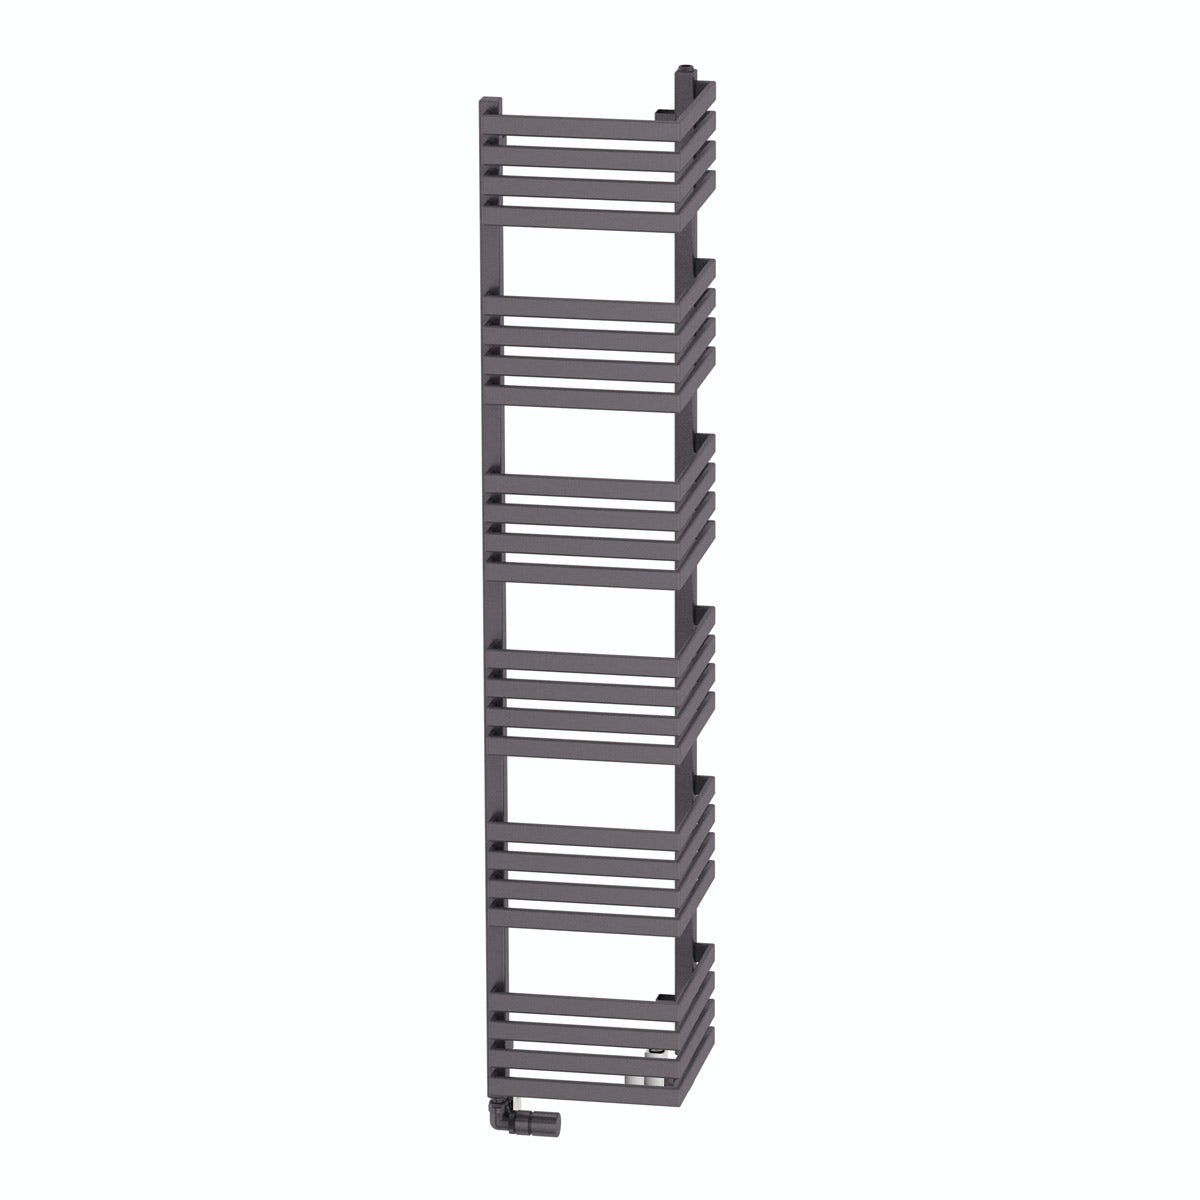 Terma Outcorner modern grey heated towel rail 1545 x 300